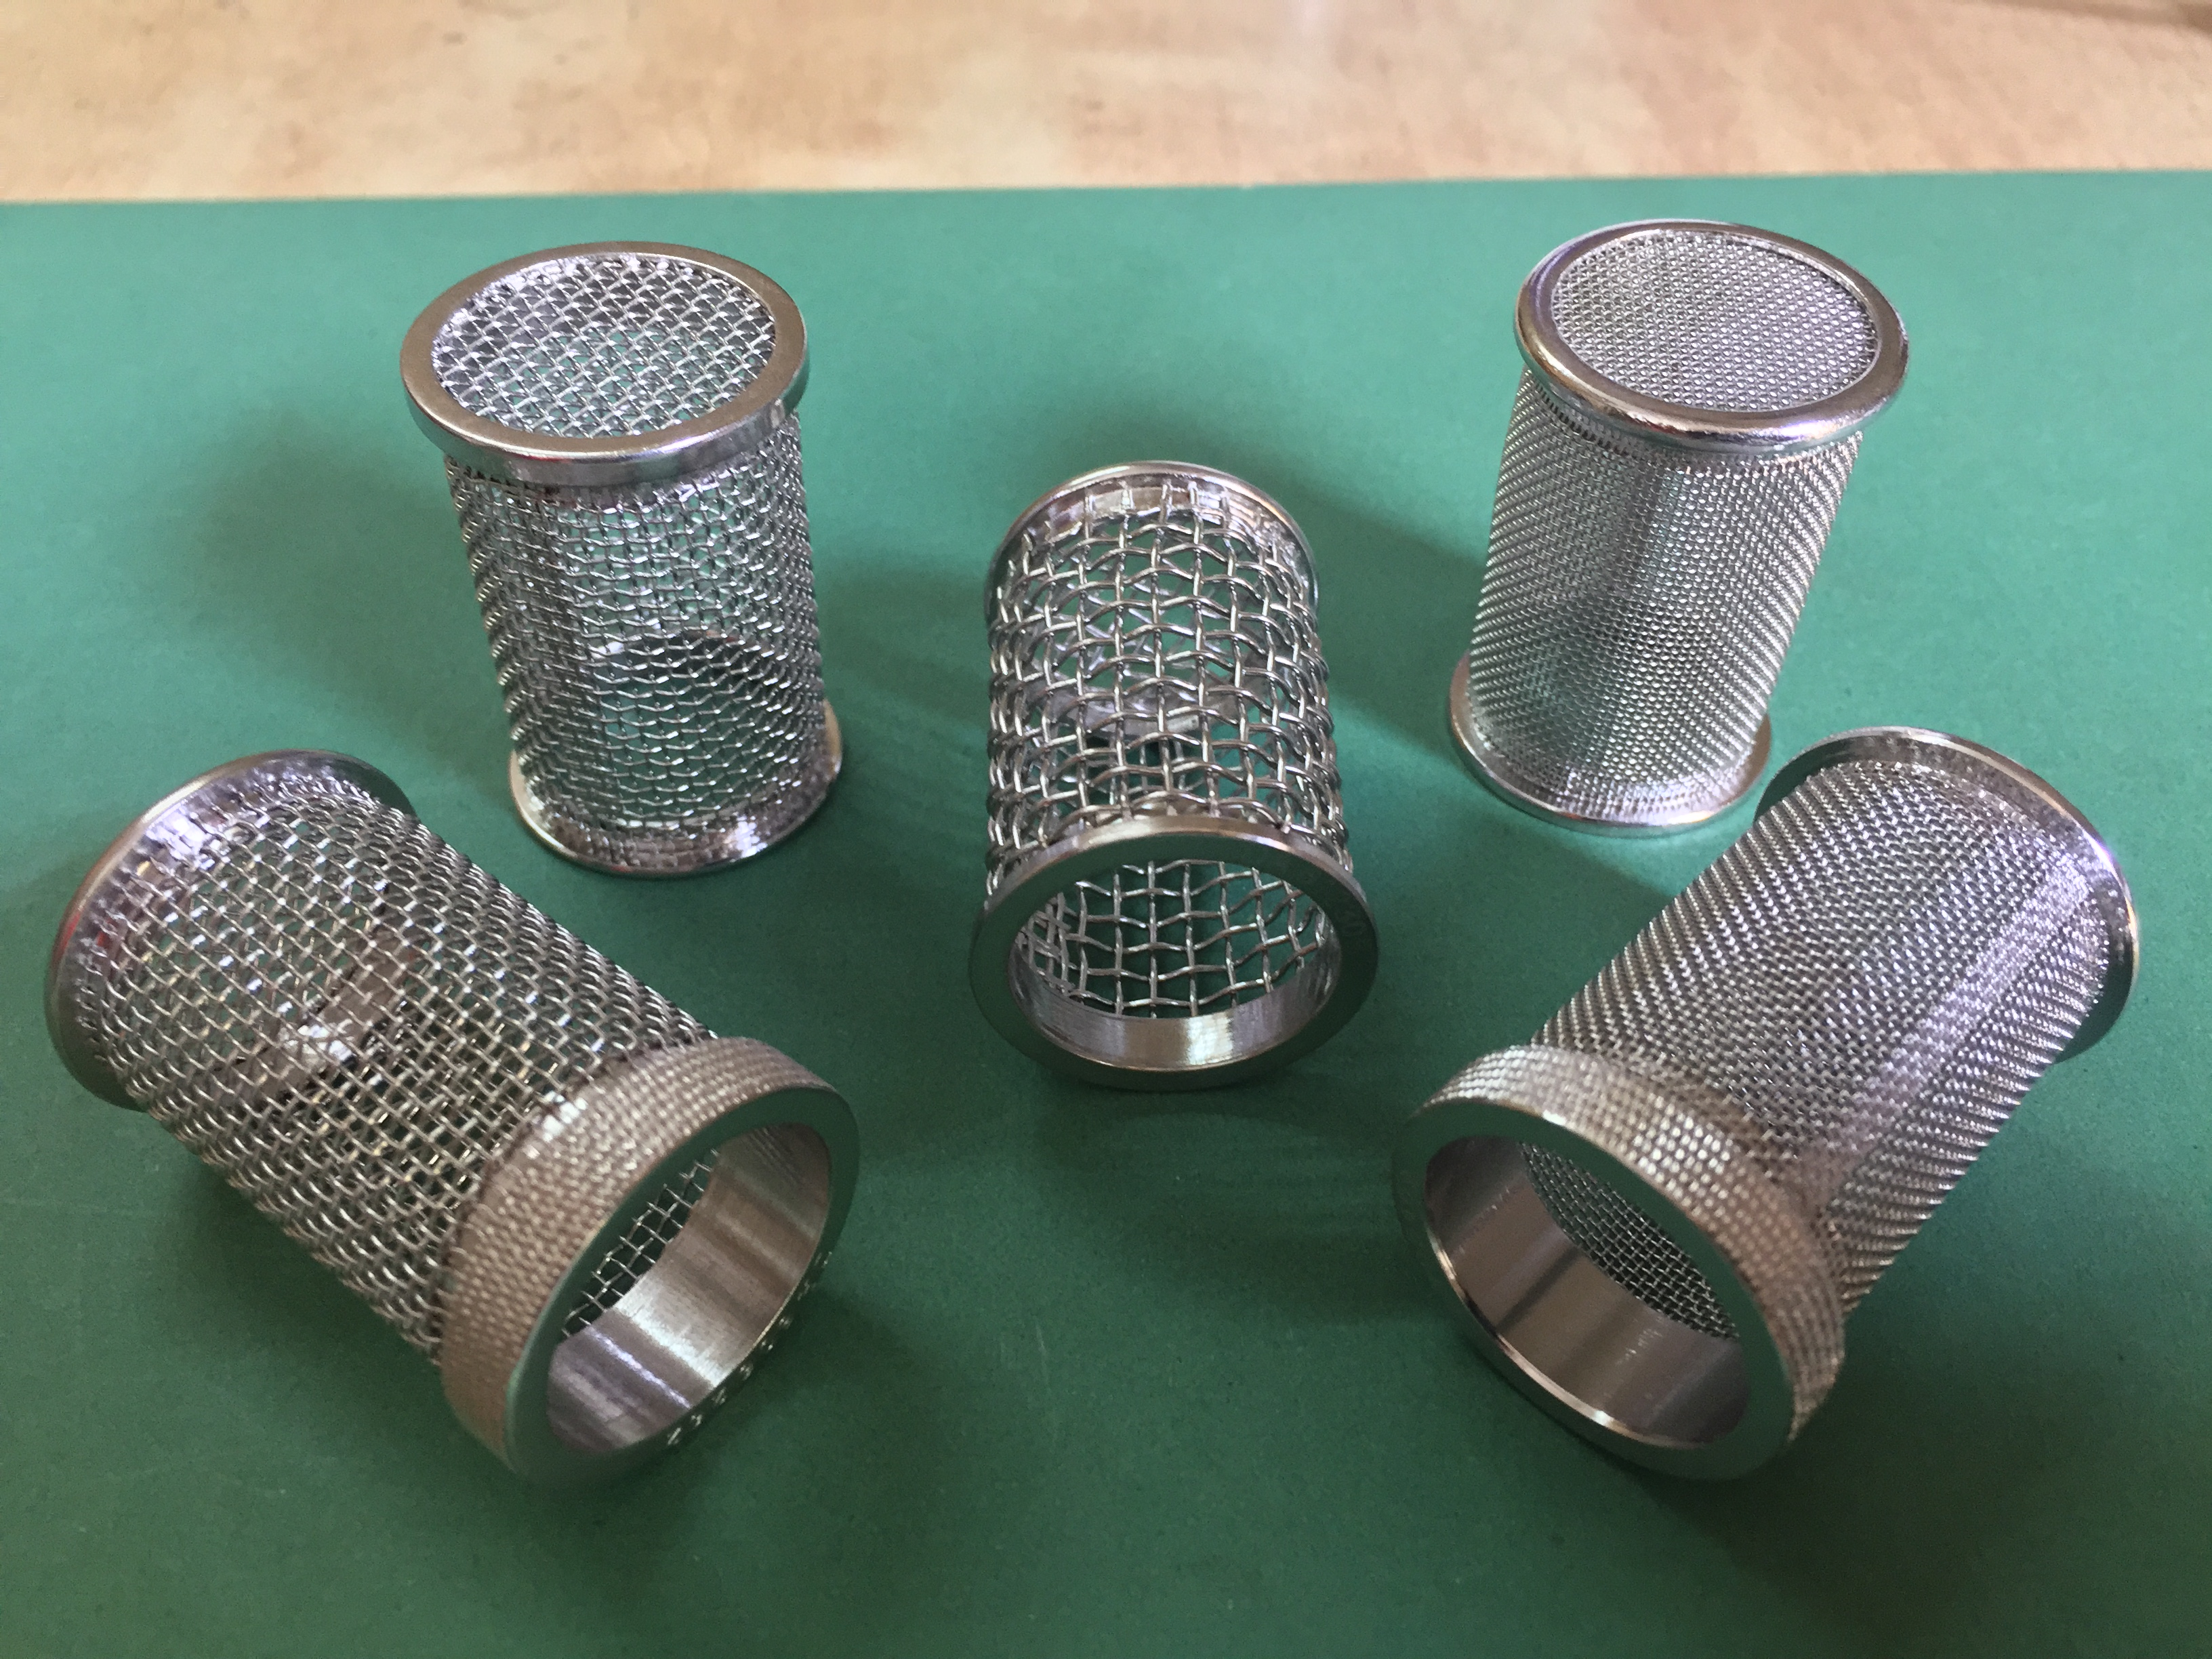 SS Mesh Basket manufacturers in india, SS Mesh Basket exporter in india, SS Mesh Basket supplier in india